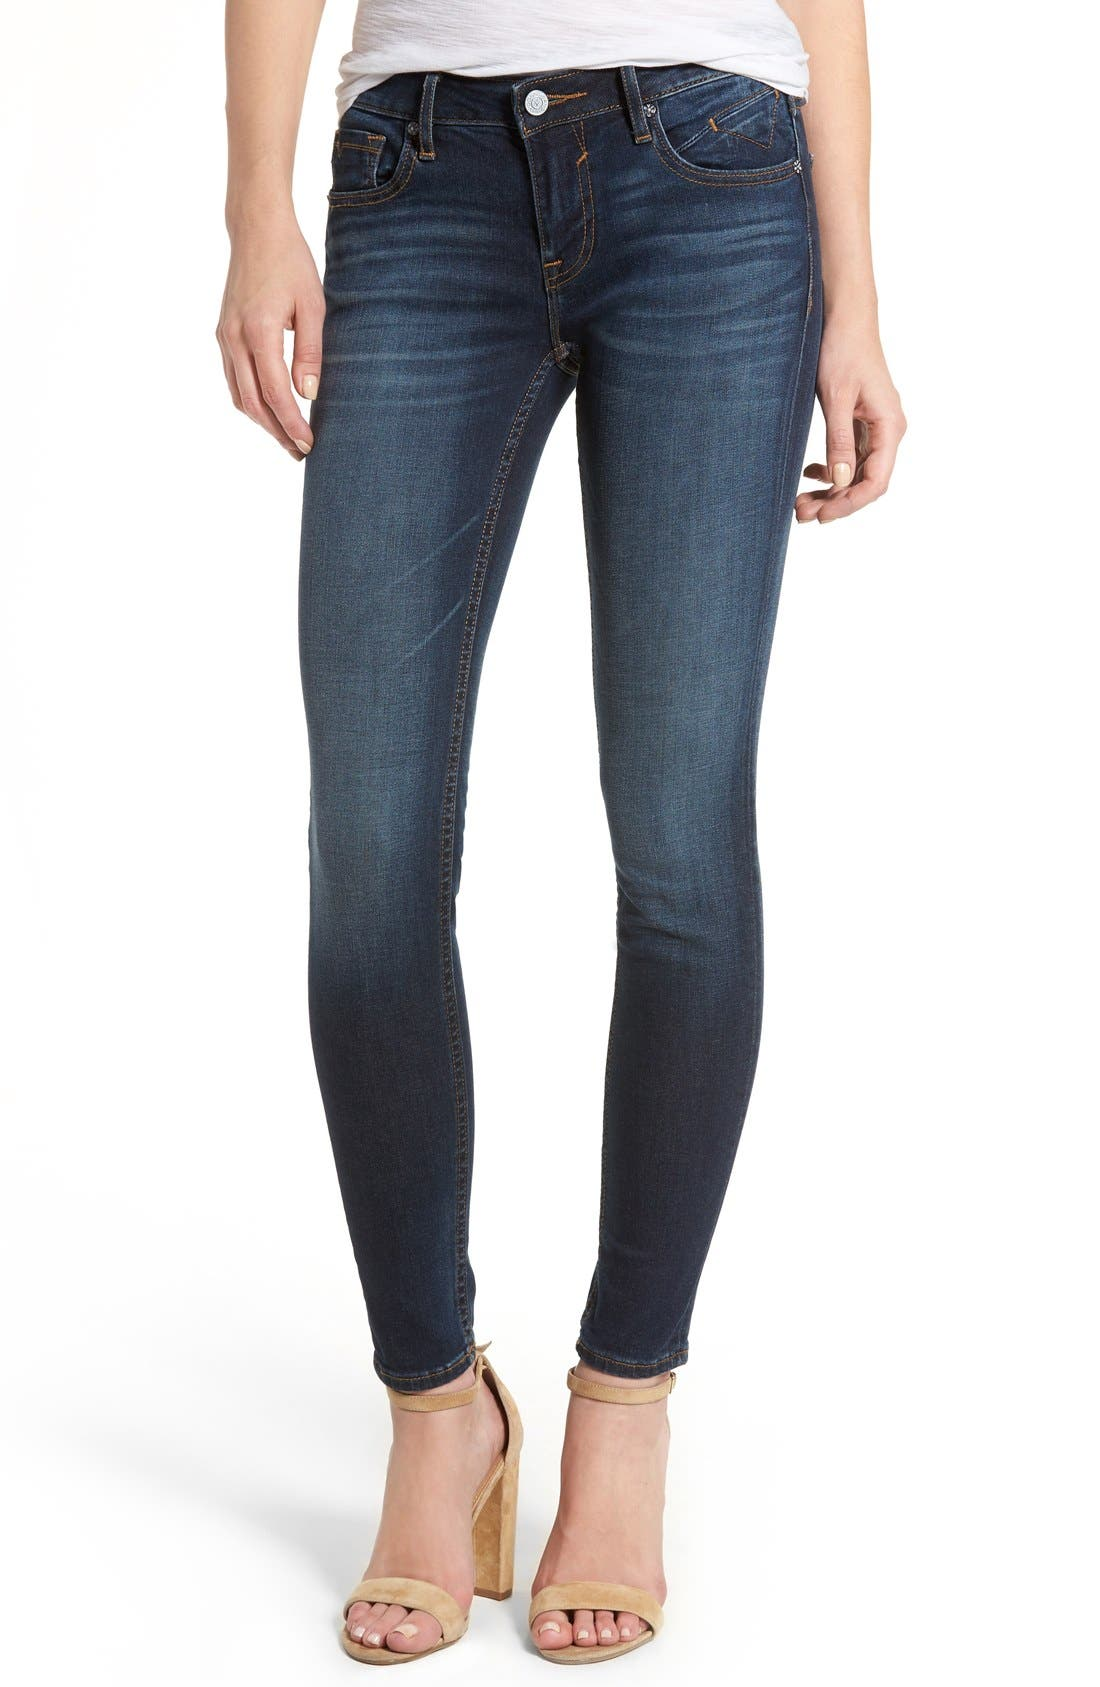 Jagger Skinny Jeans,                         Main,                         color, DARK